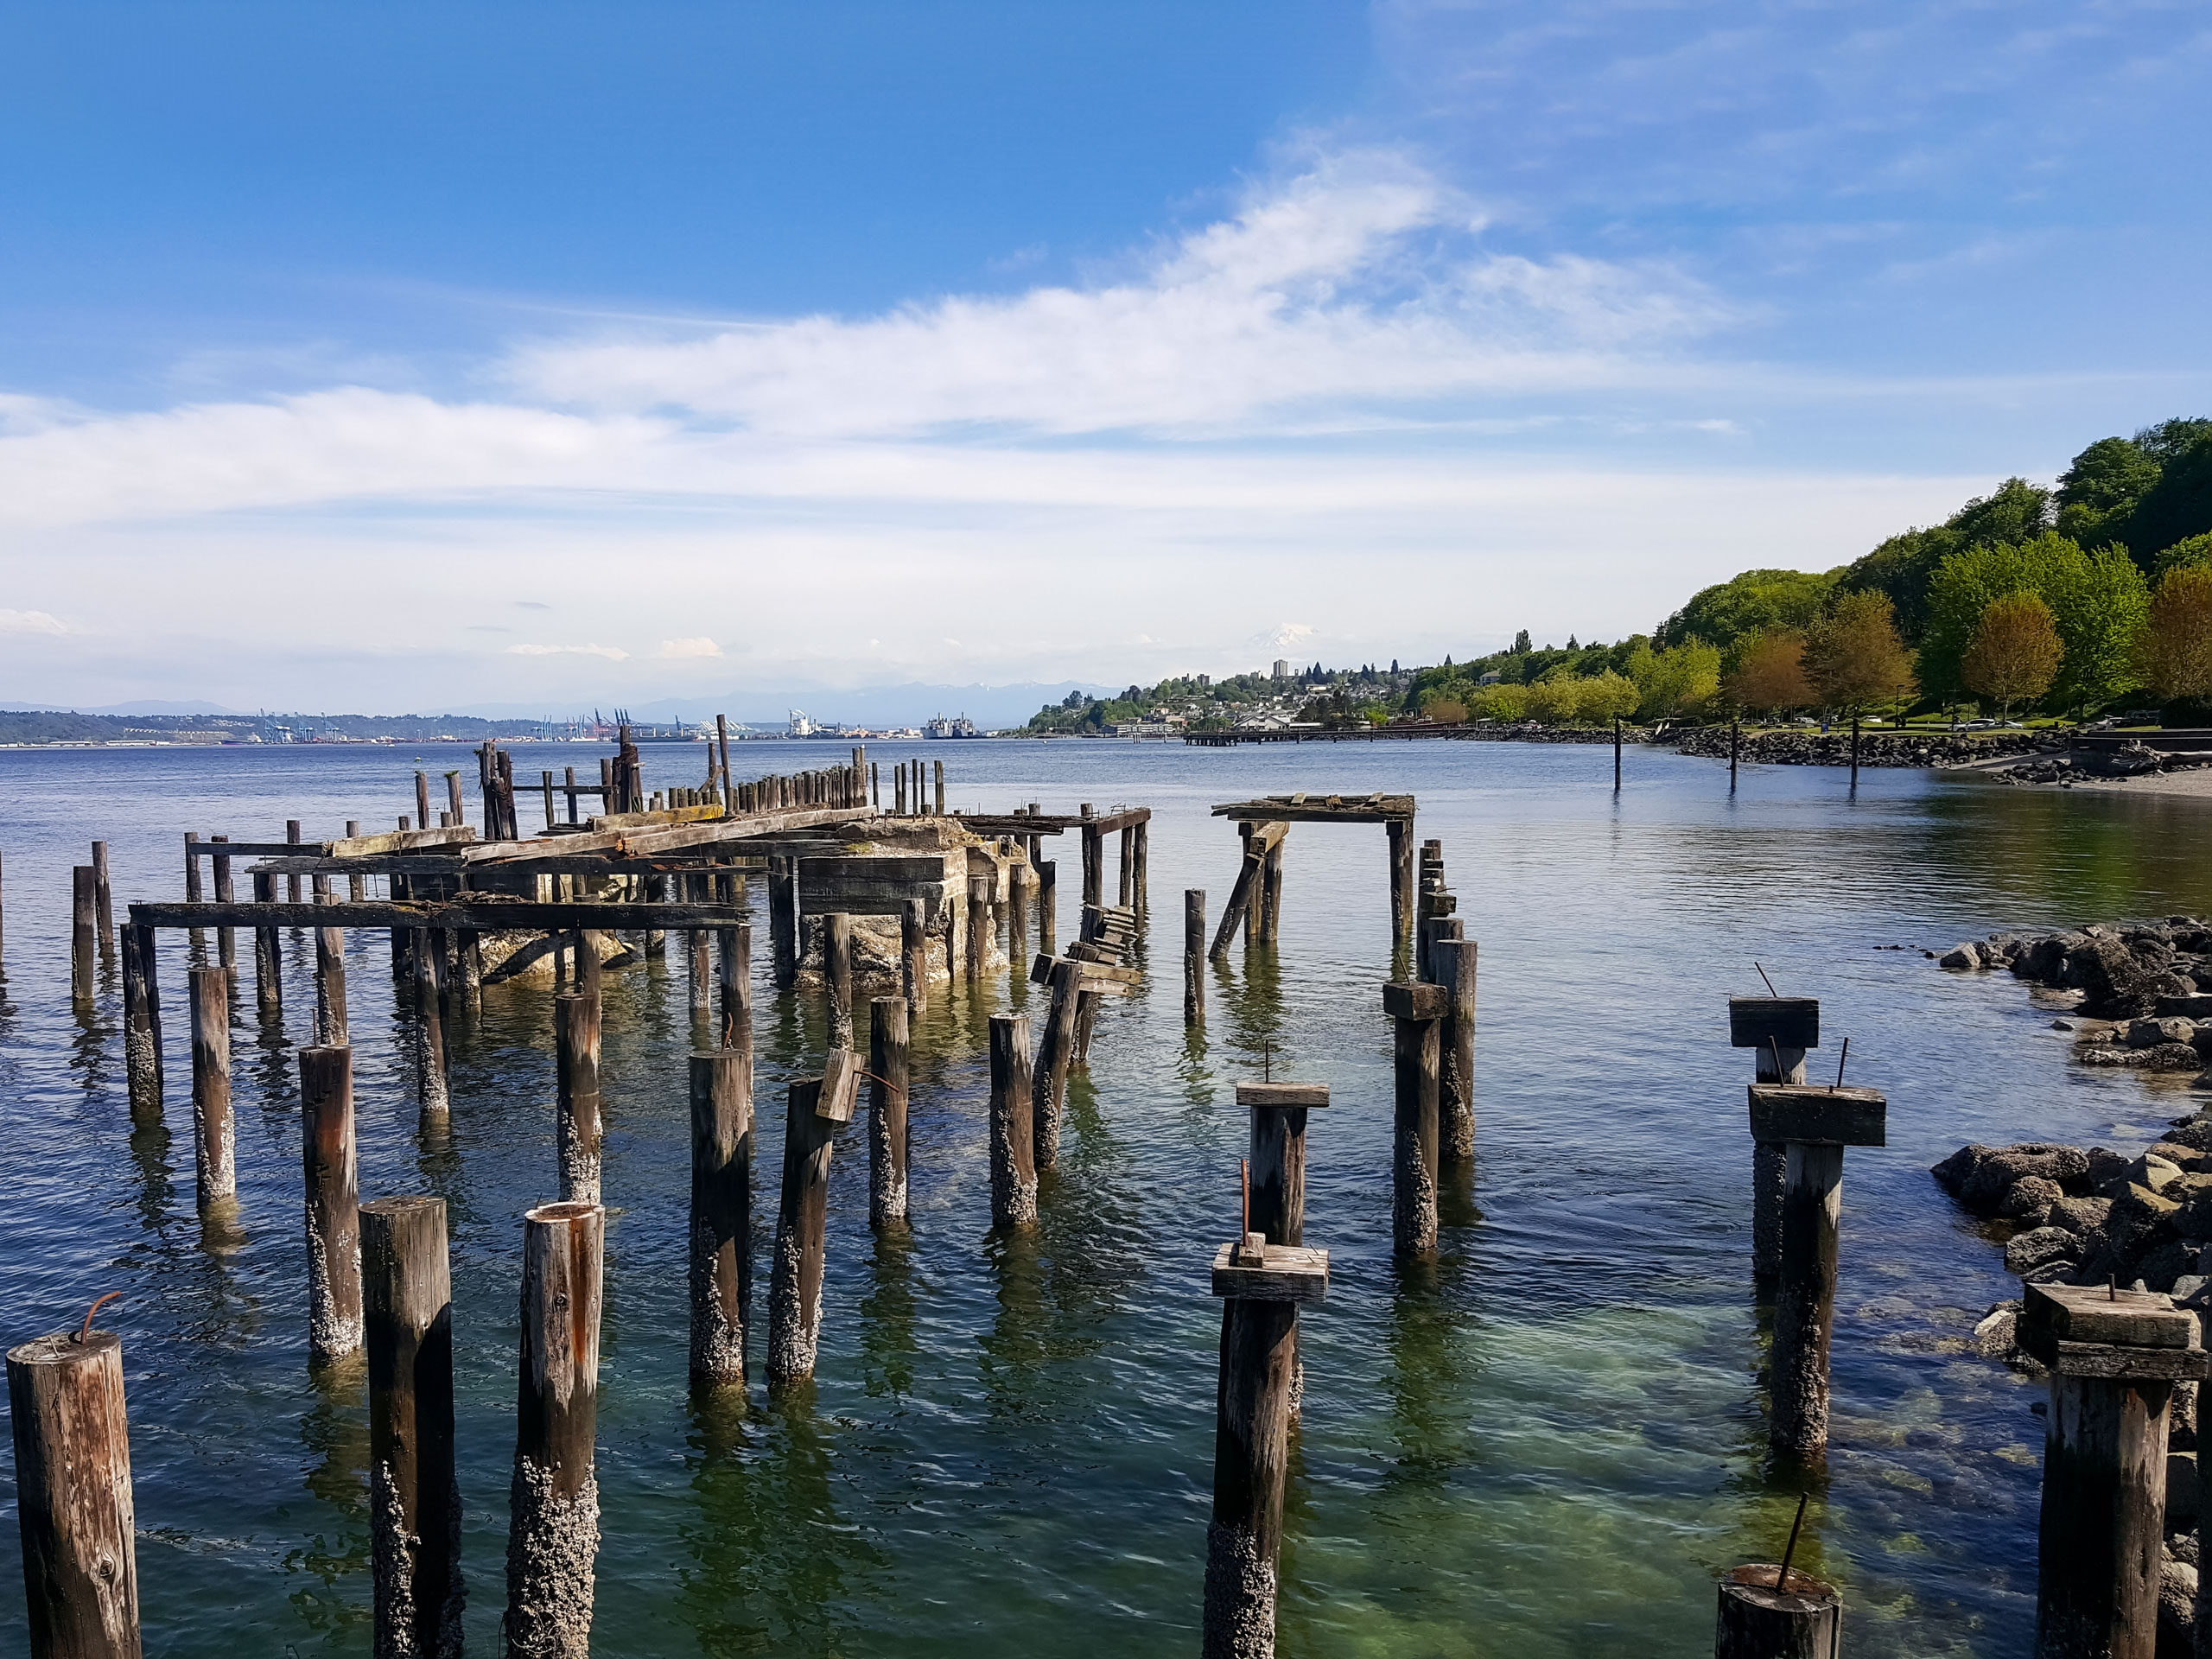 Remains of old pier on the Pacific coast of Tacoma